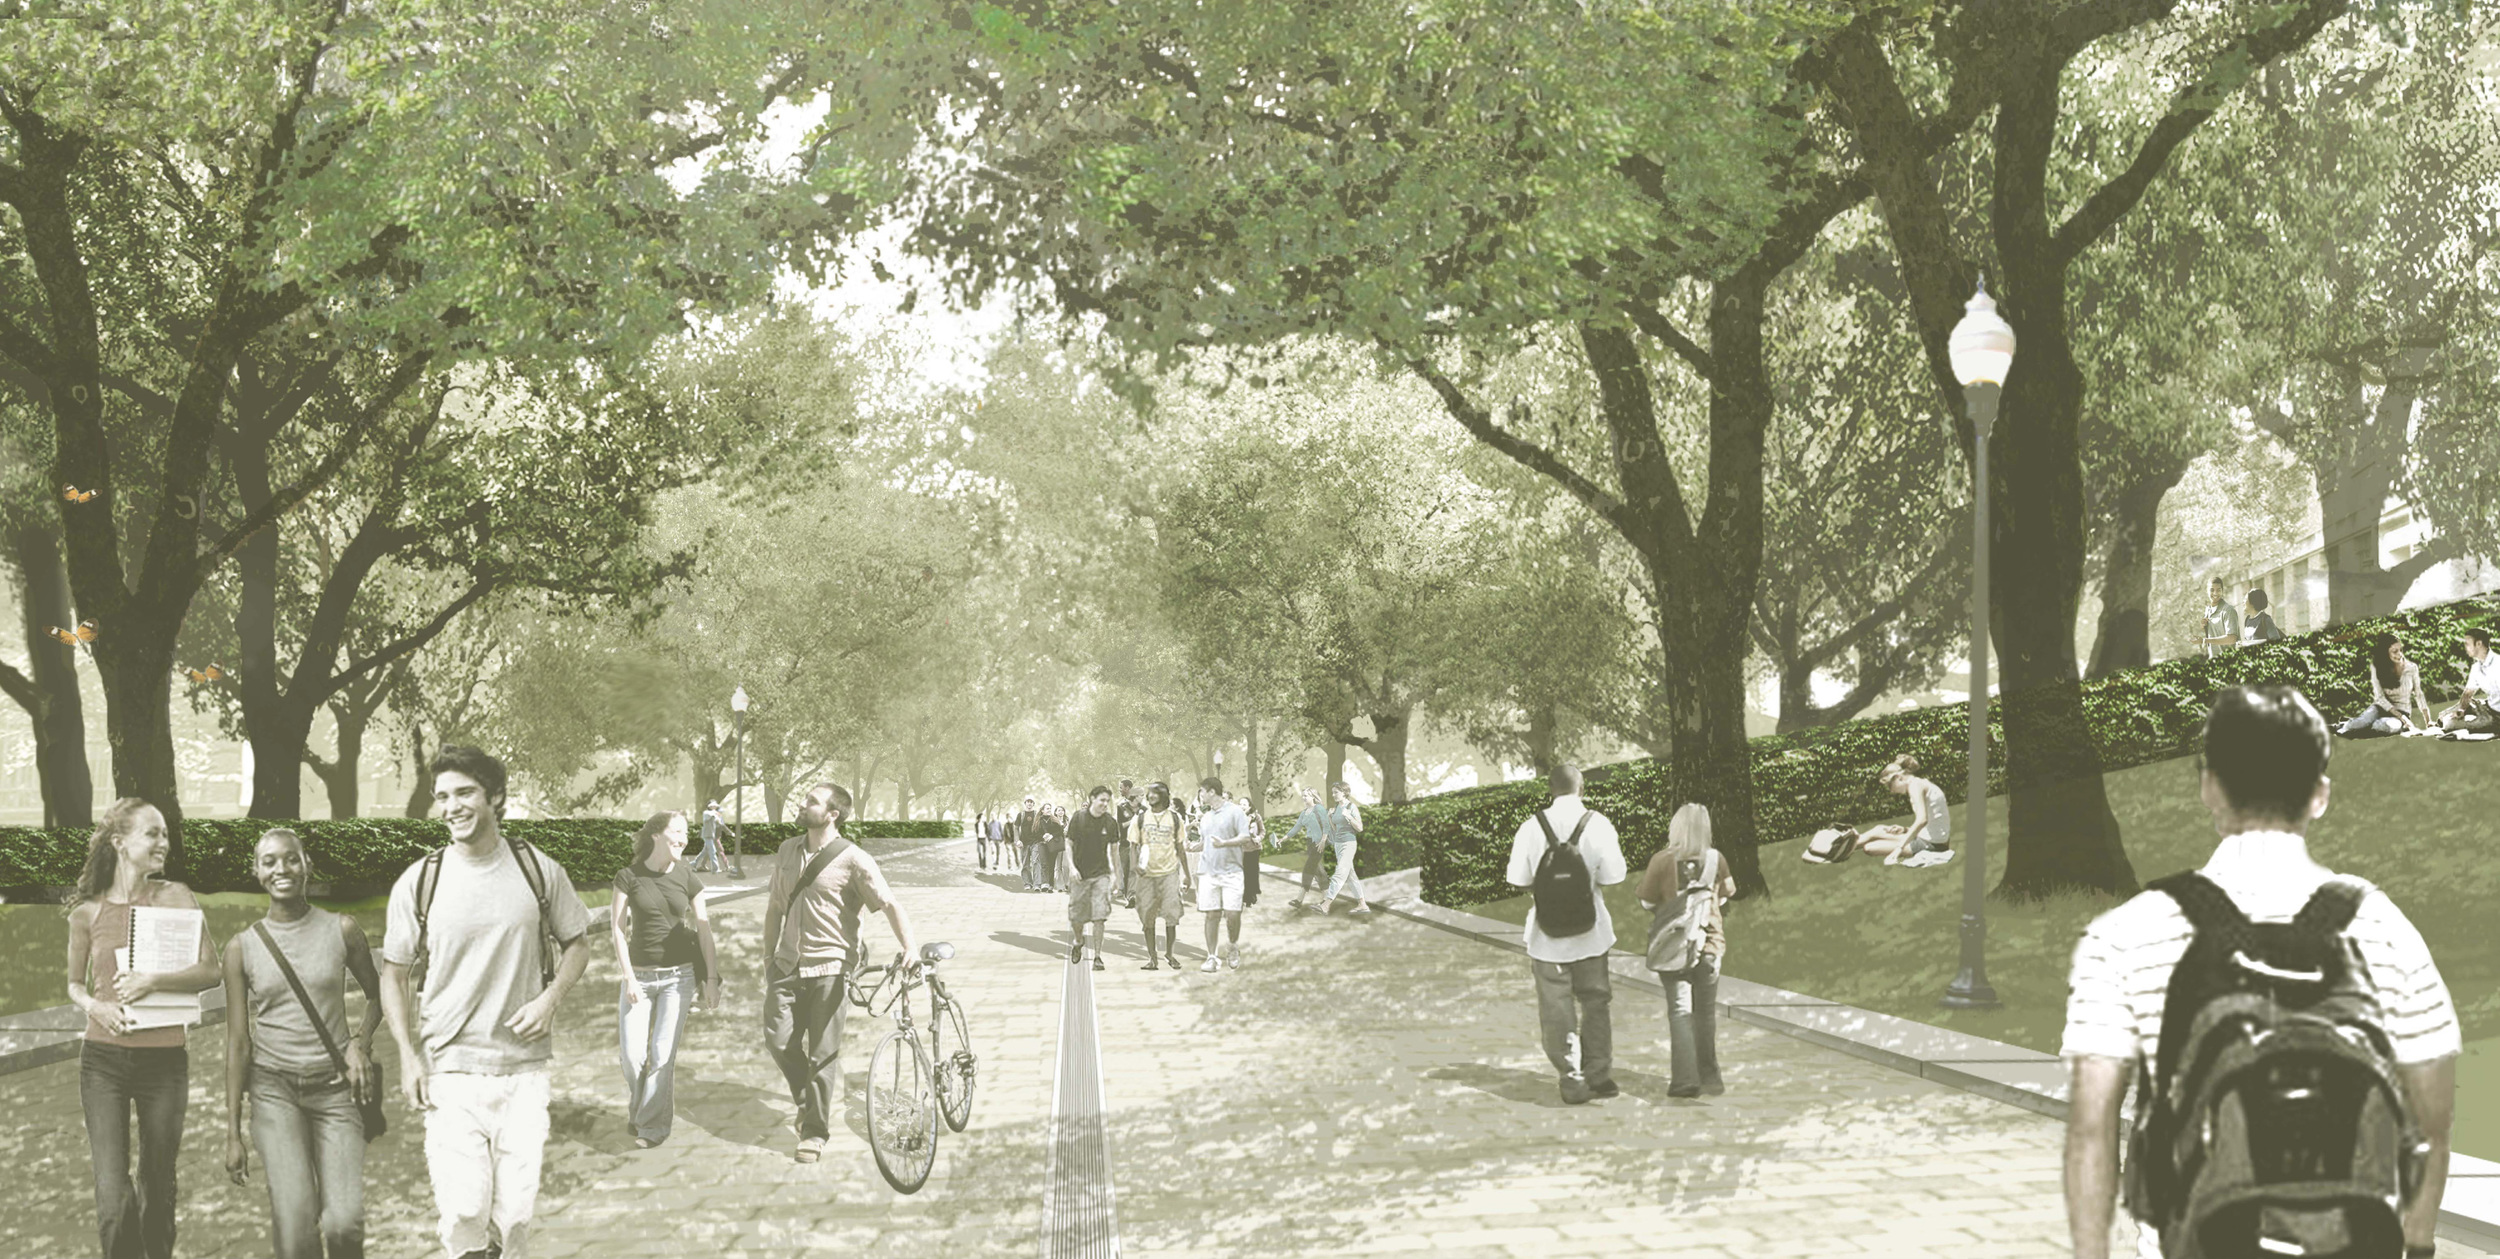 Rendering of the redesigned Speedway Pedestrian Mall